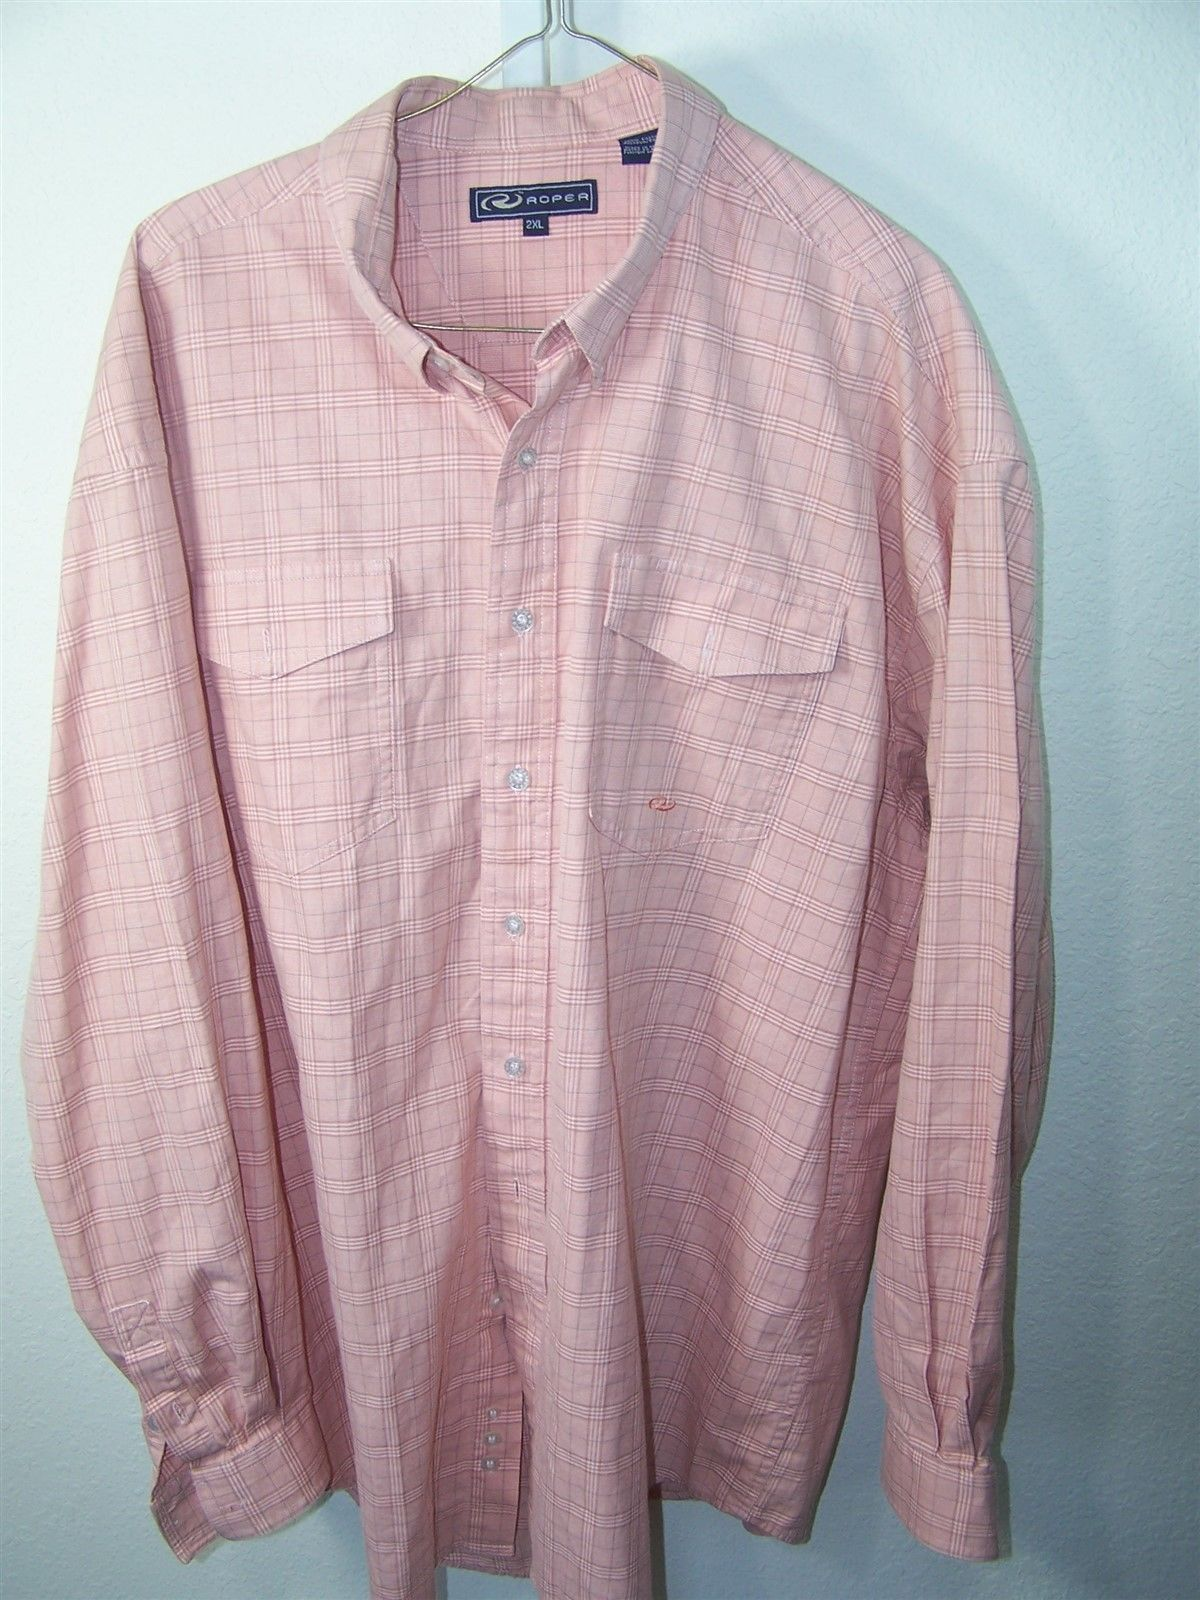 Roper mens 2xl cotton shirt three button cuffs button down for Three button collar shirts